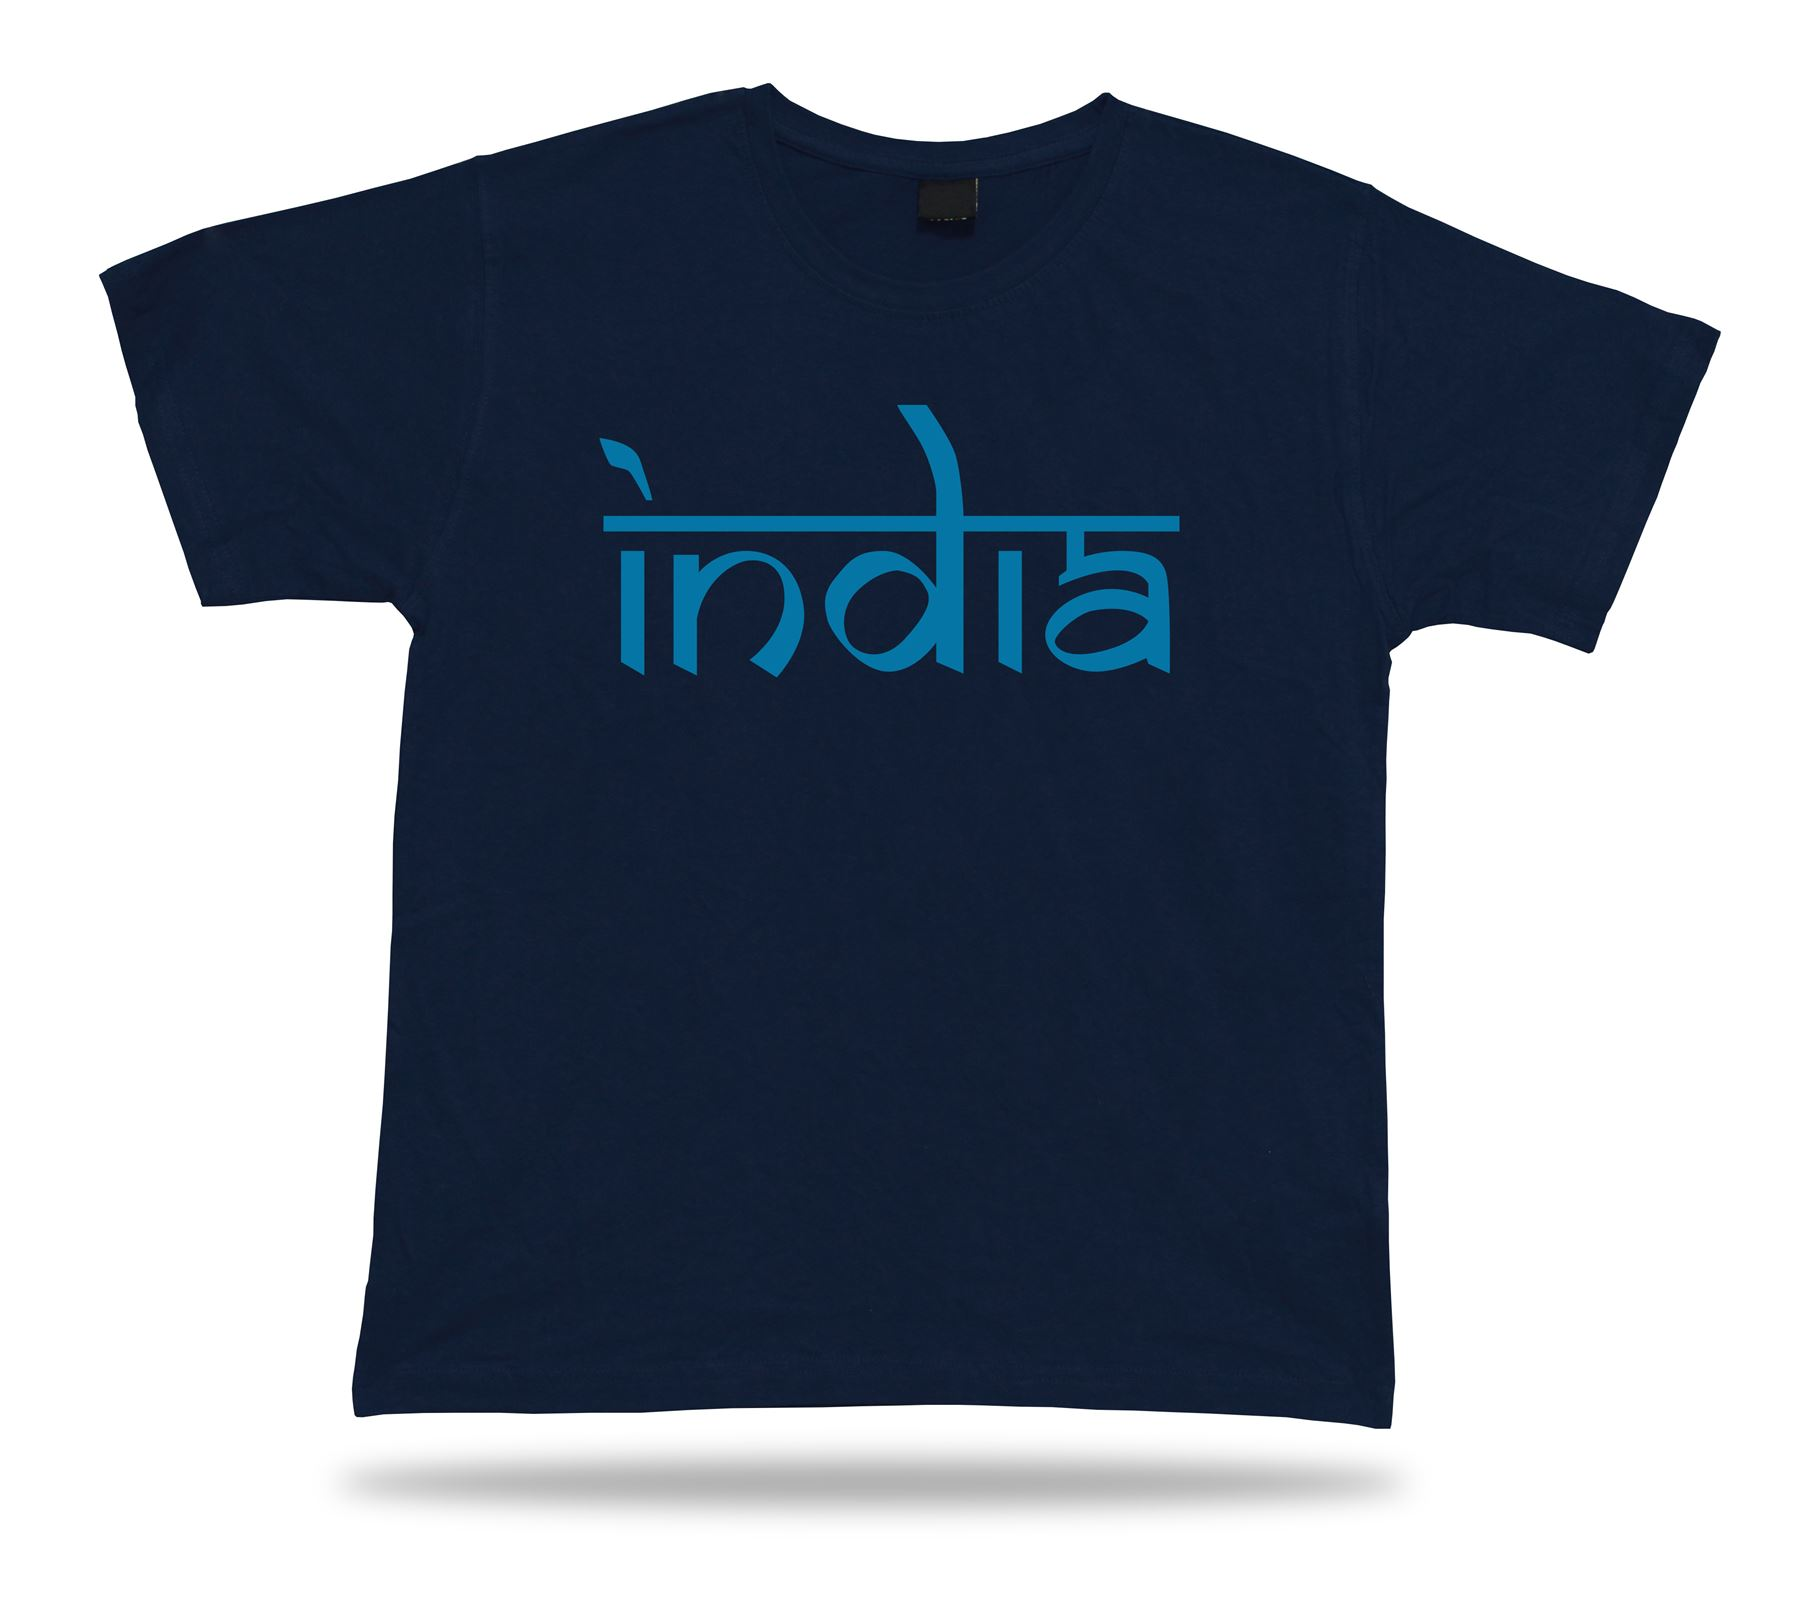 India text stamp t shirt comics classic spiritual apparel for Photo t shirts with text